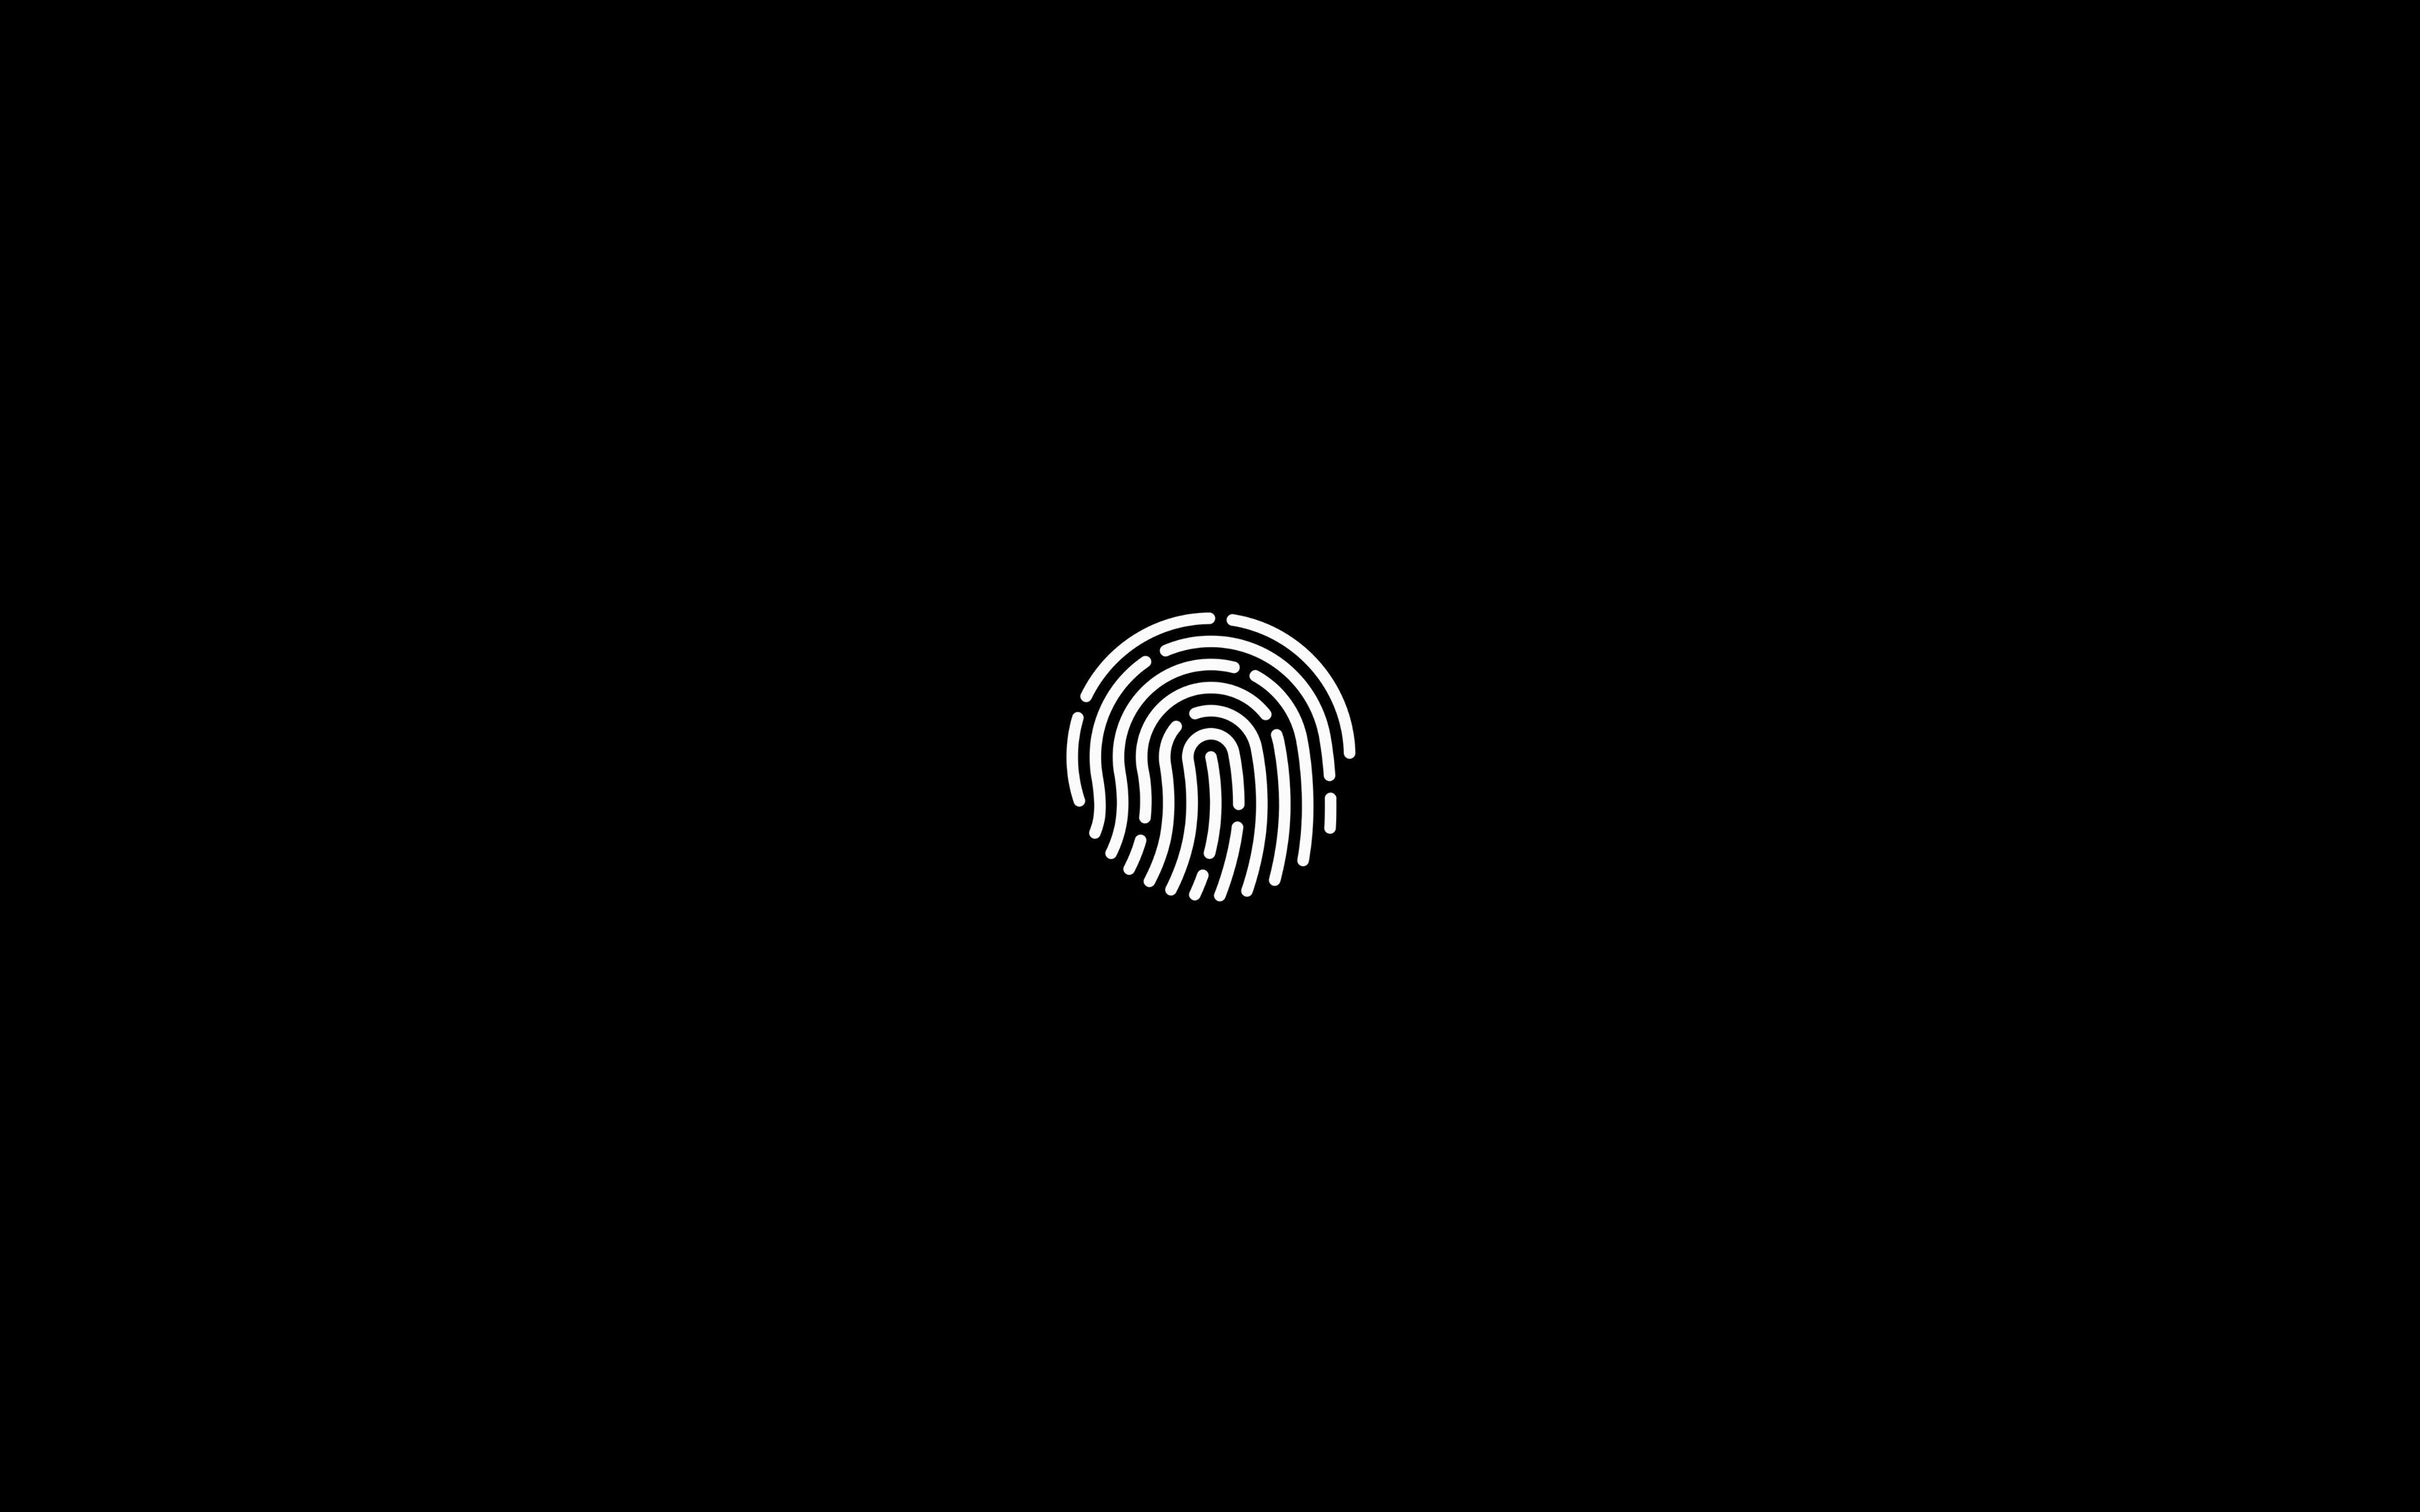 Ab30 Wallpaper Touch Id Noir Apple Papers Co